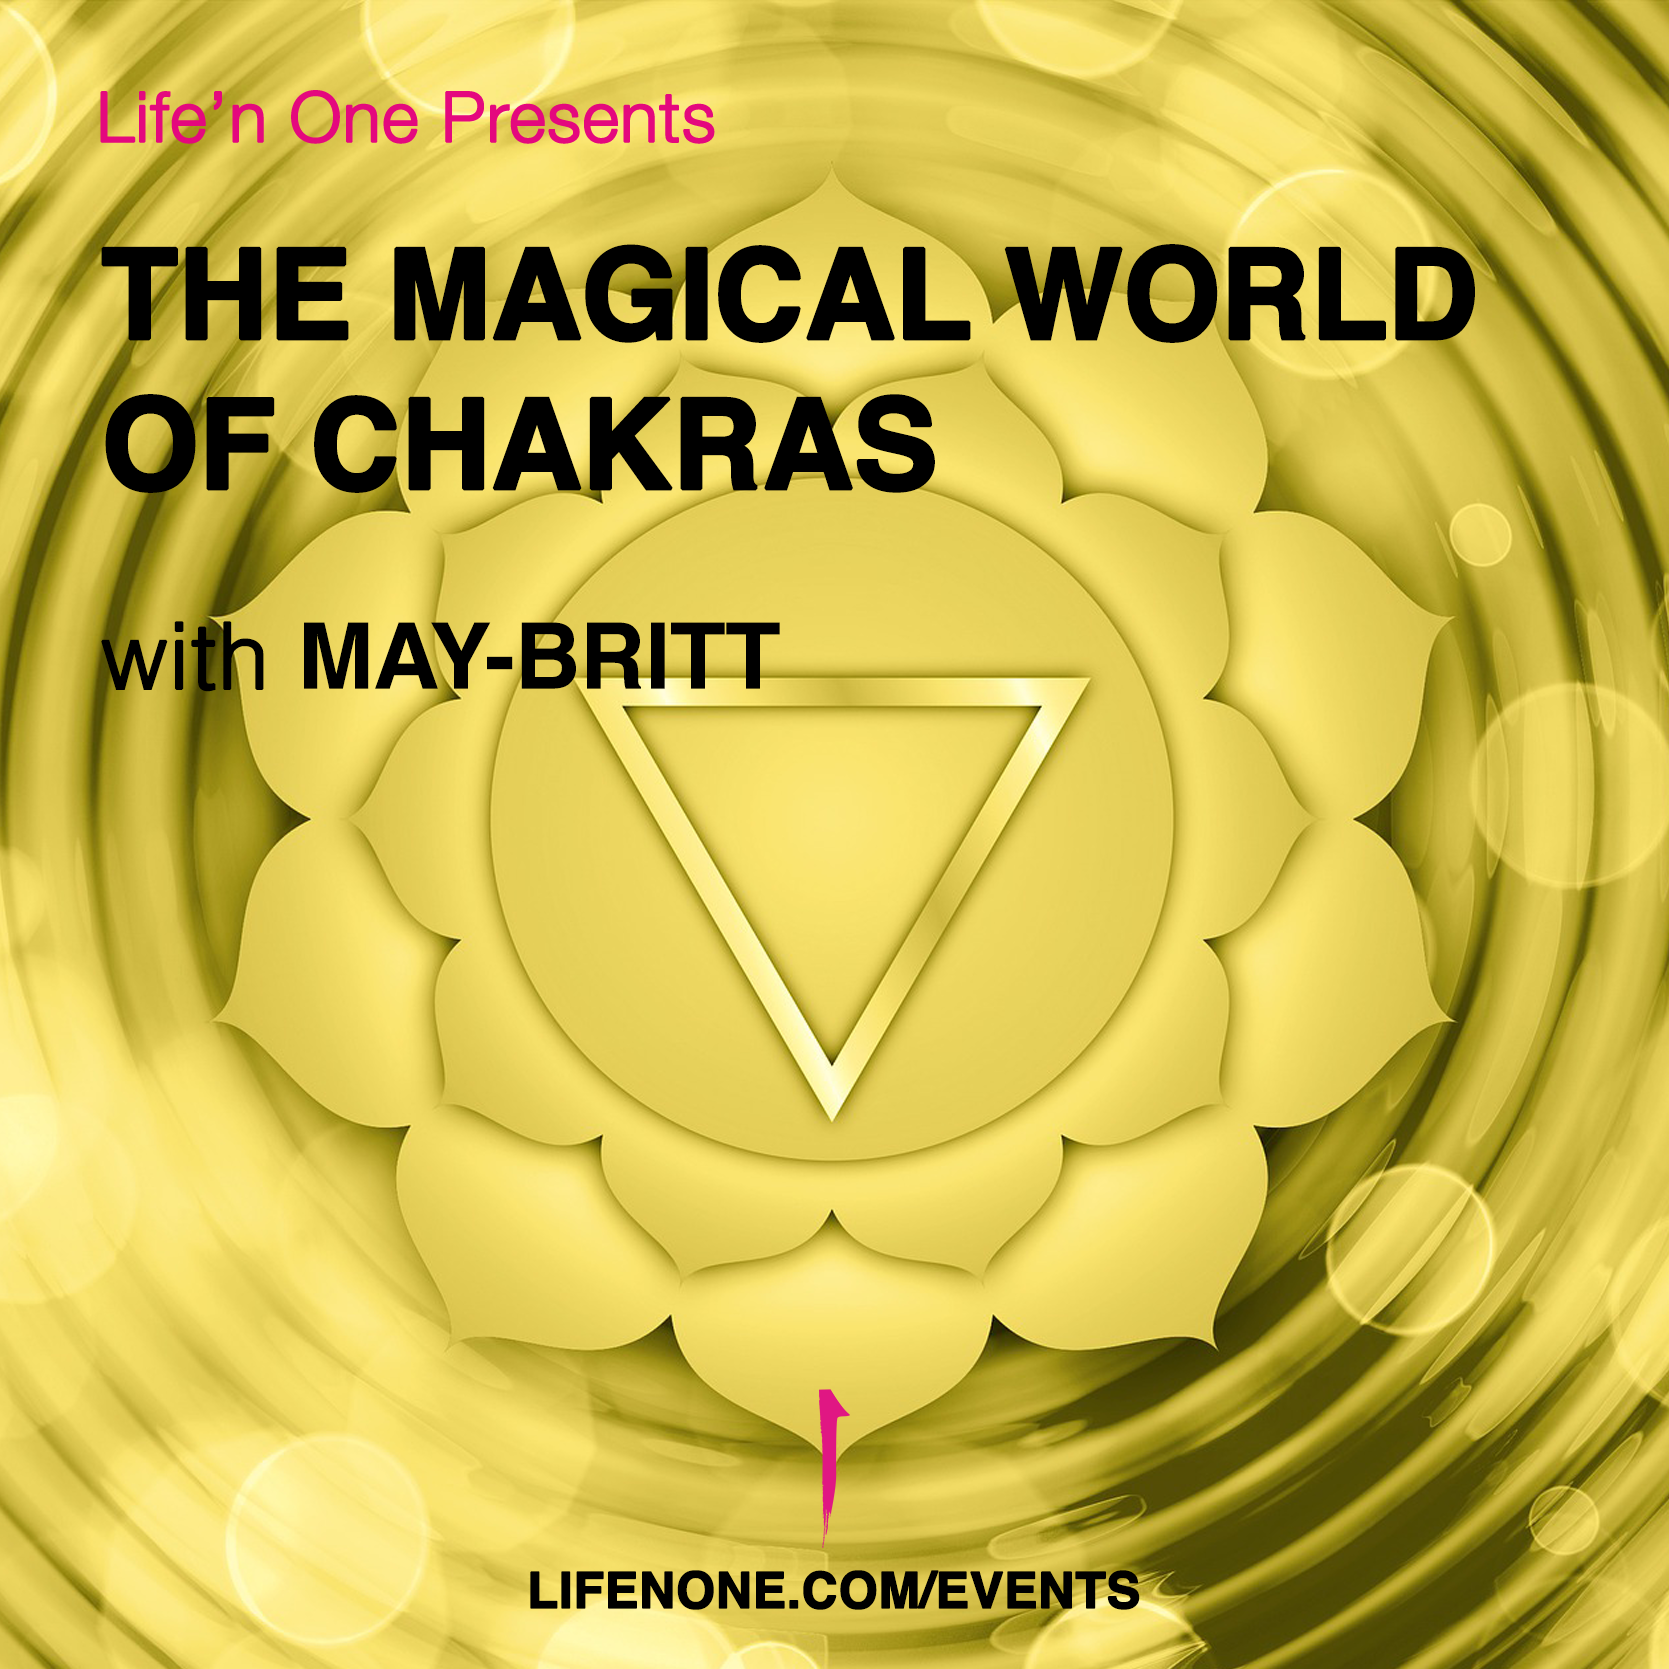 The Magical World of Chakras